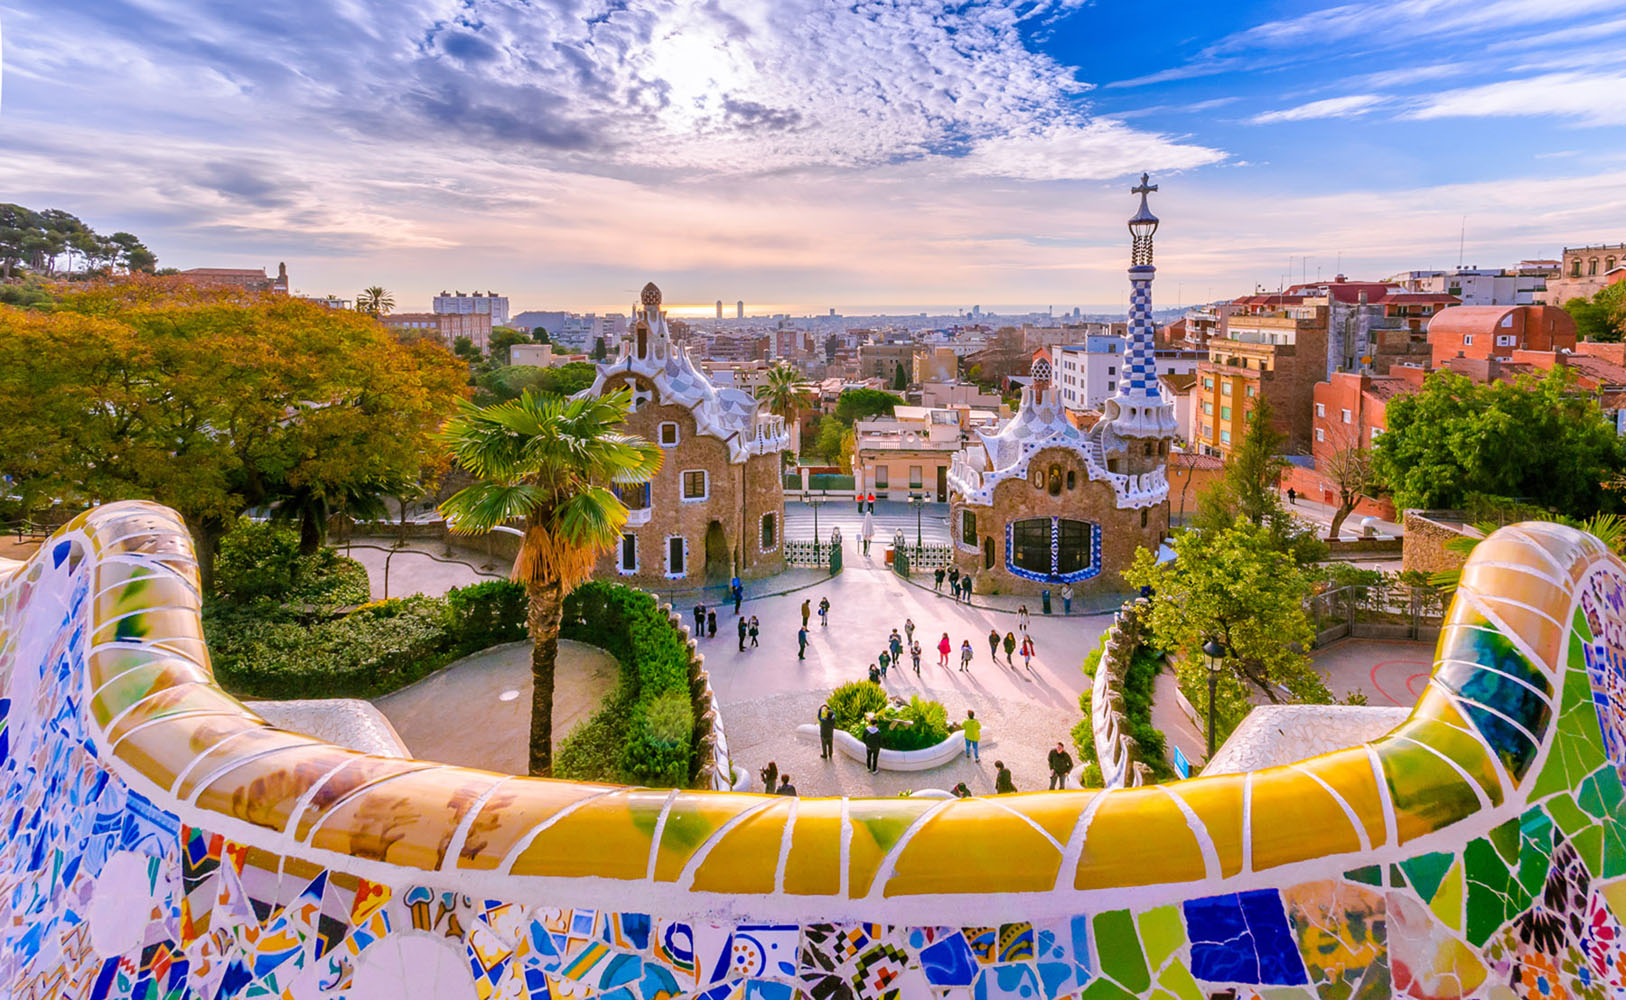 Don't miss Parc Güell—this incredible garden complex is home to Gaudi's own residence, a plaza, and mosaic trendadis.